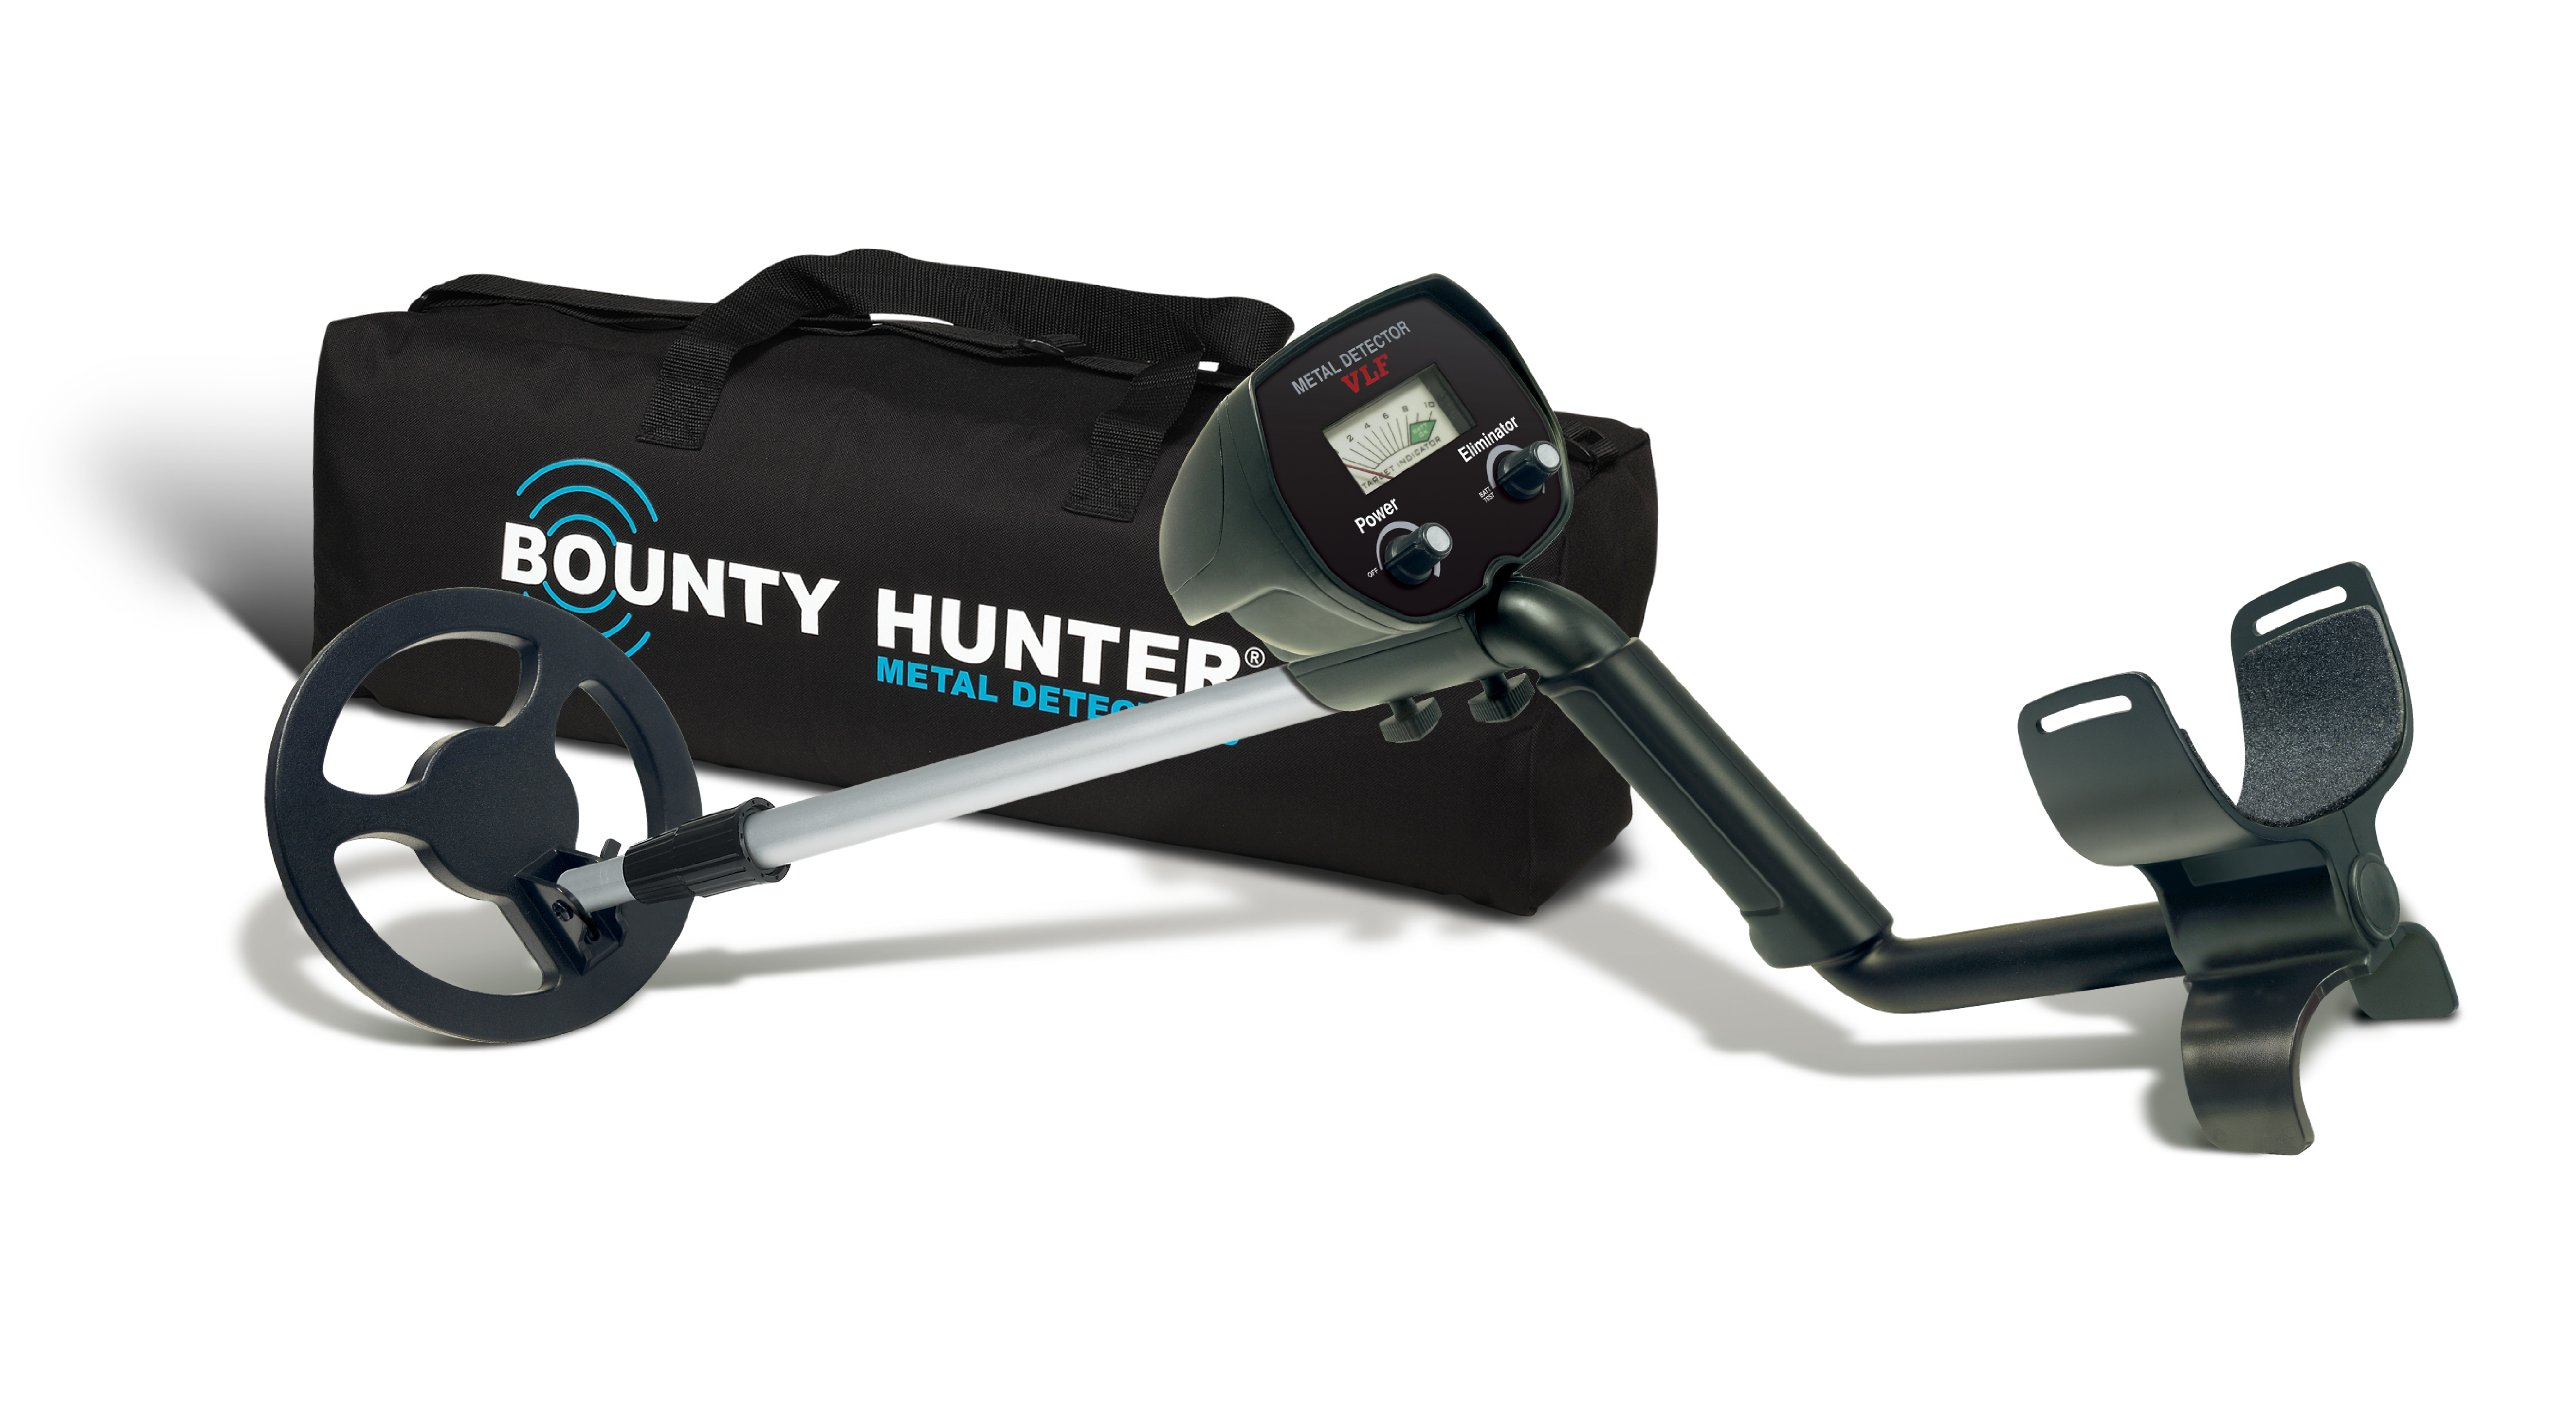 The Metal Detector VLF with Free Carry Bag